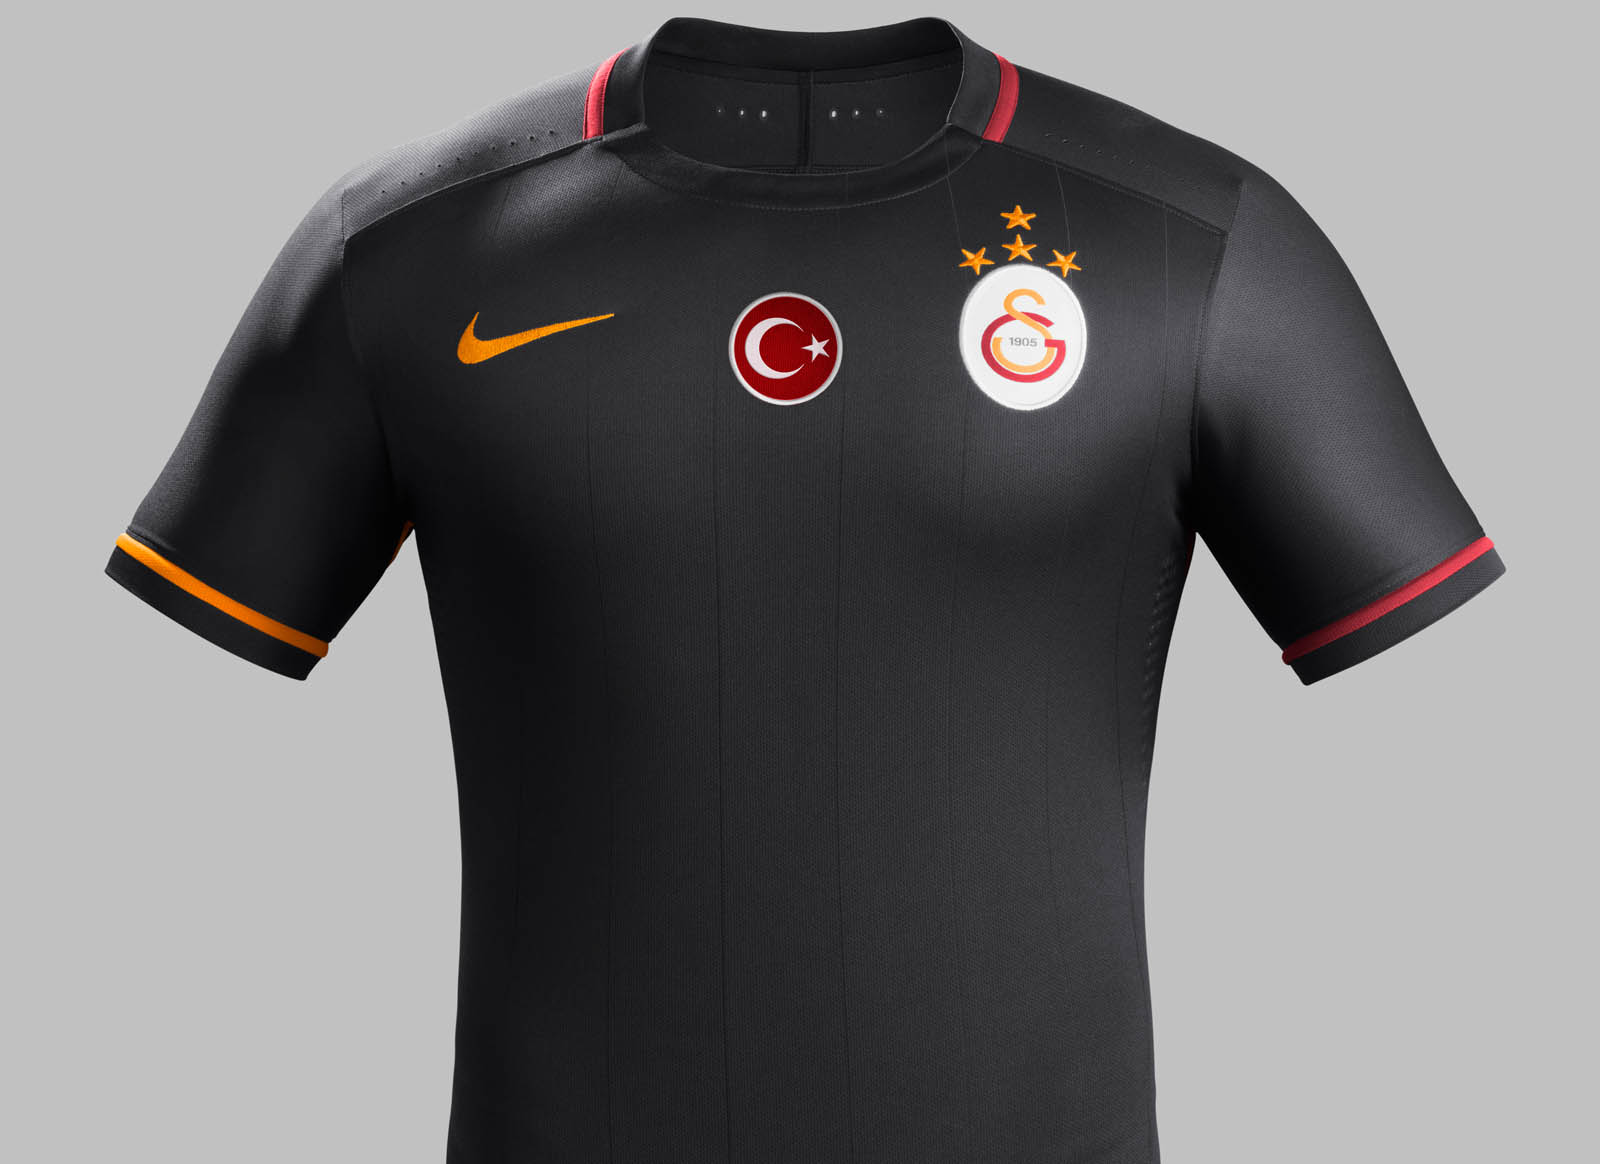 512x512 galatasaray home kit pictures free download - Http 2 Bp Blogspot Com Yzroowmsecw Vbcuinvotqi